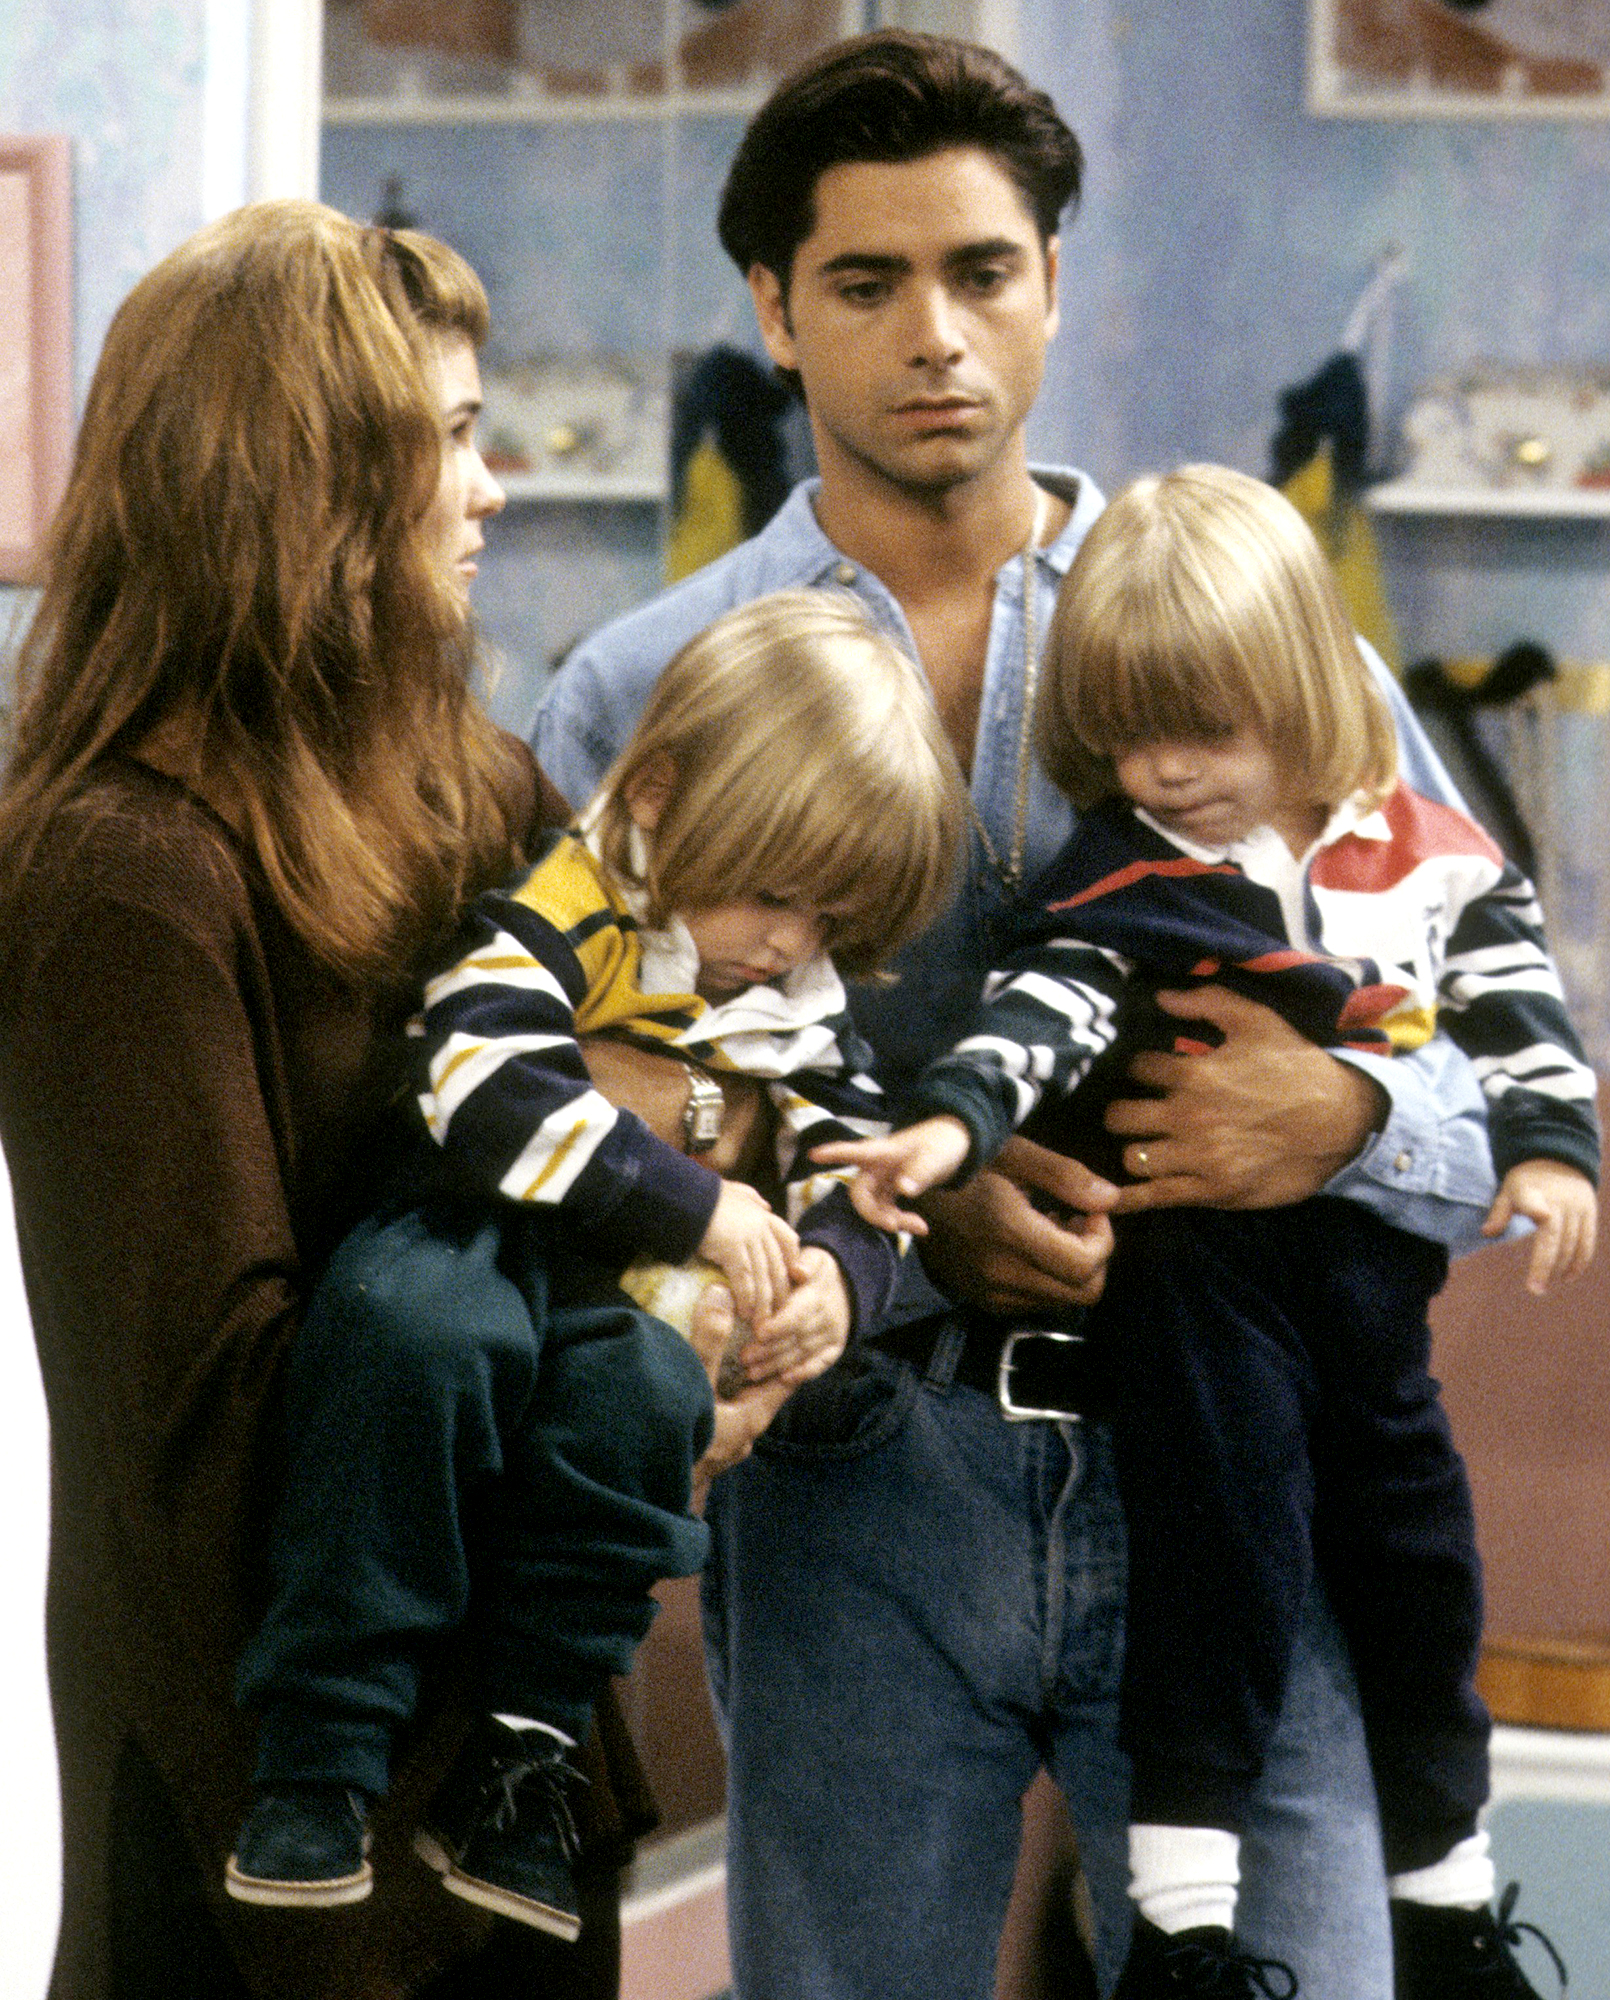 Aunt-Becky-Once-Argued-With-Uncle-Jesse-About-Preschool-Scam-on-'Full-House'